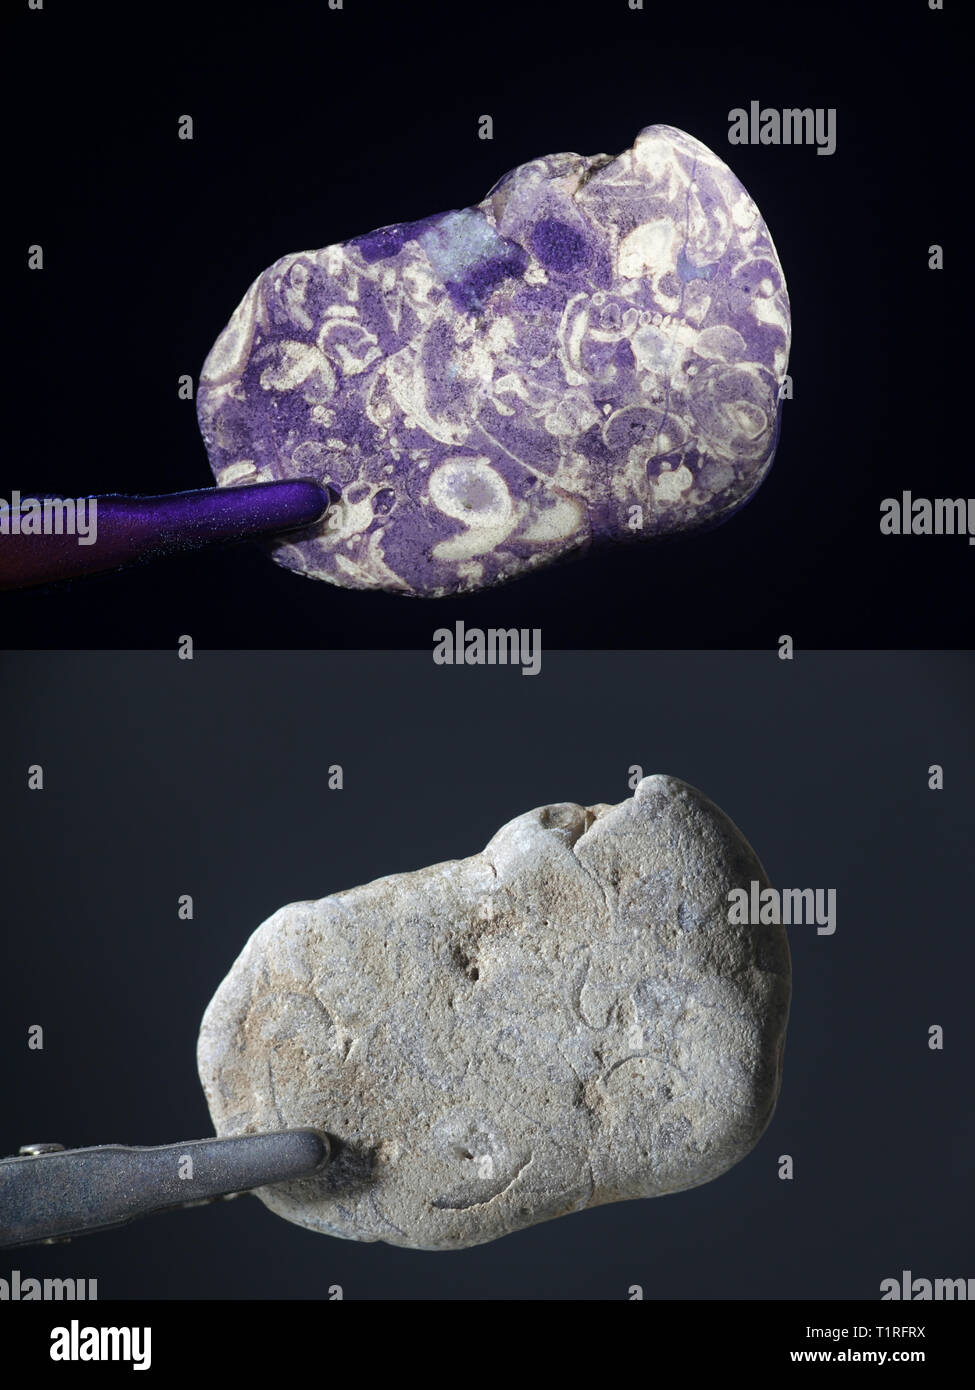 Fluorescent fossils photographed in ultraviolet light (365 nm).  Lower image showing same sample in normal daylight. Stock Photo